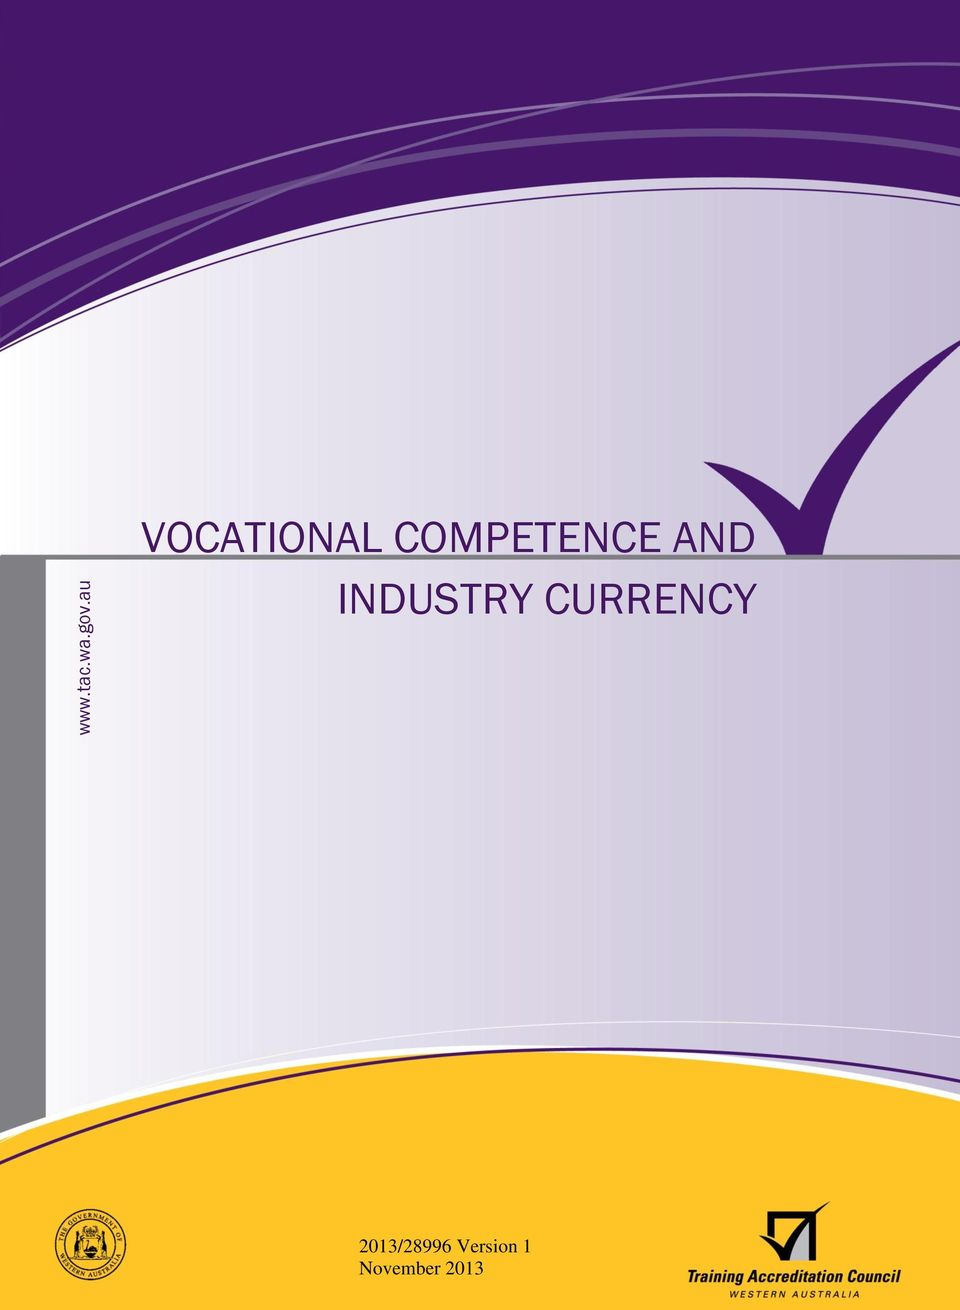 COMPETENCE AND INDUSTRY